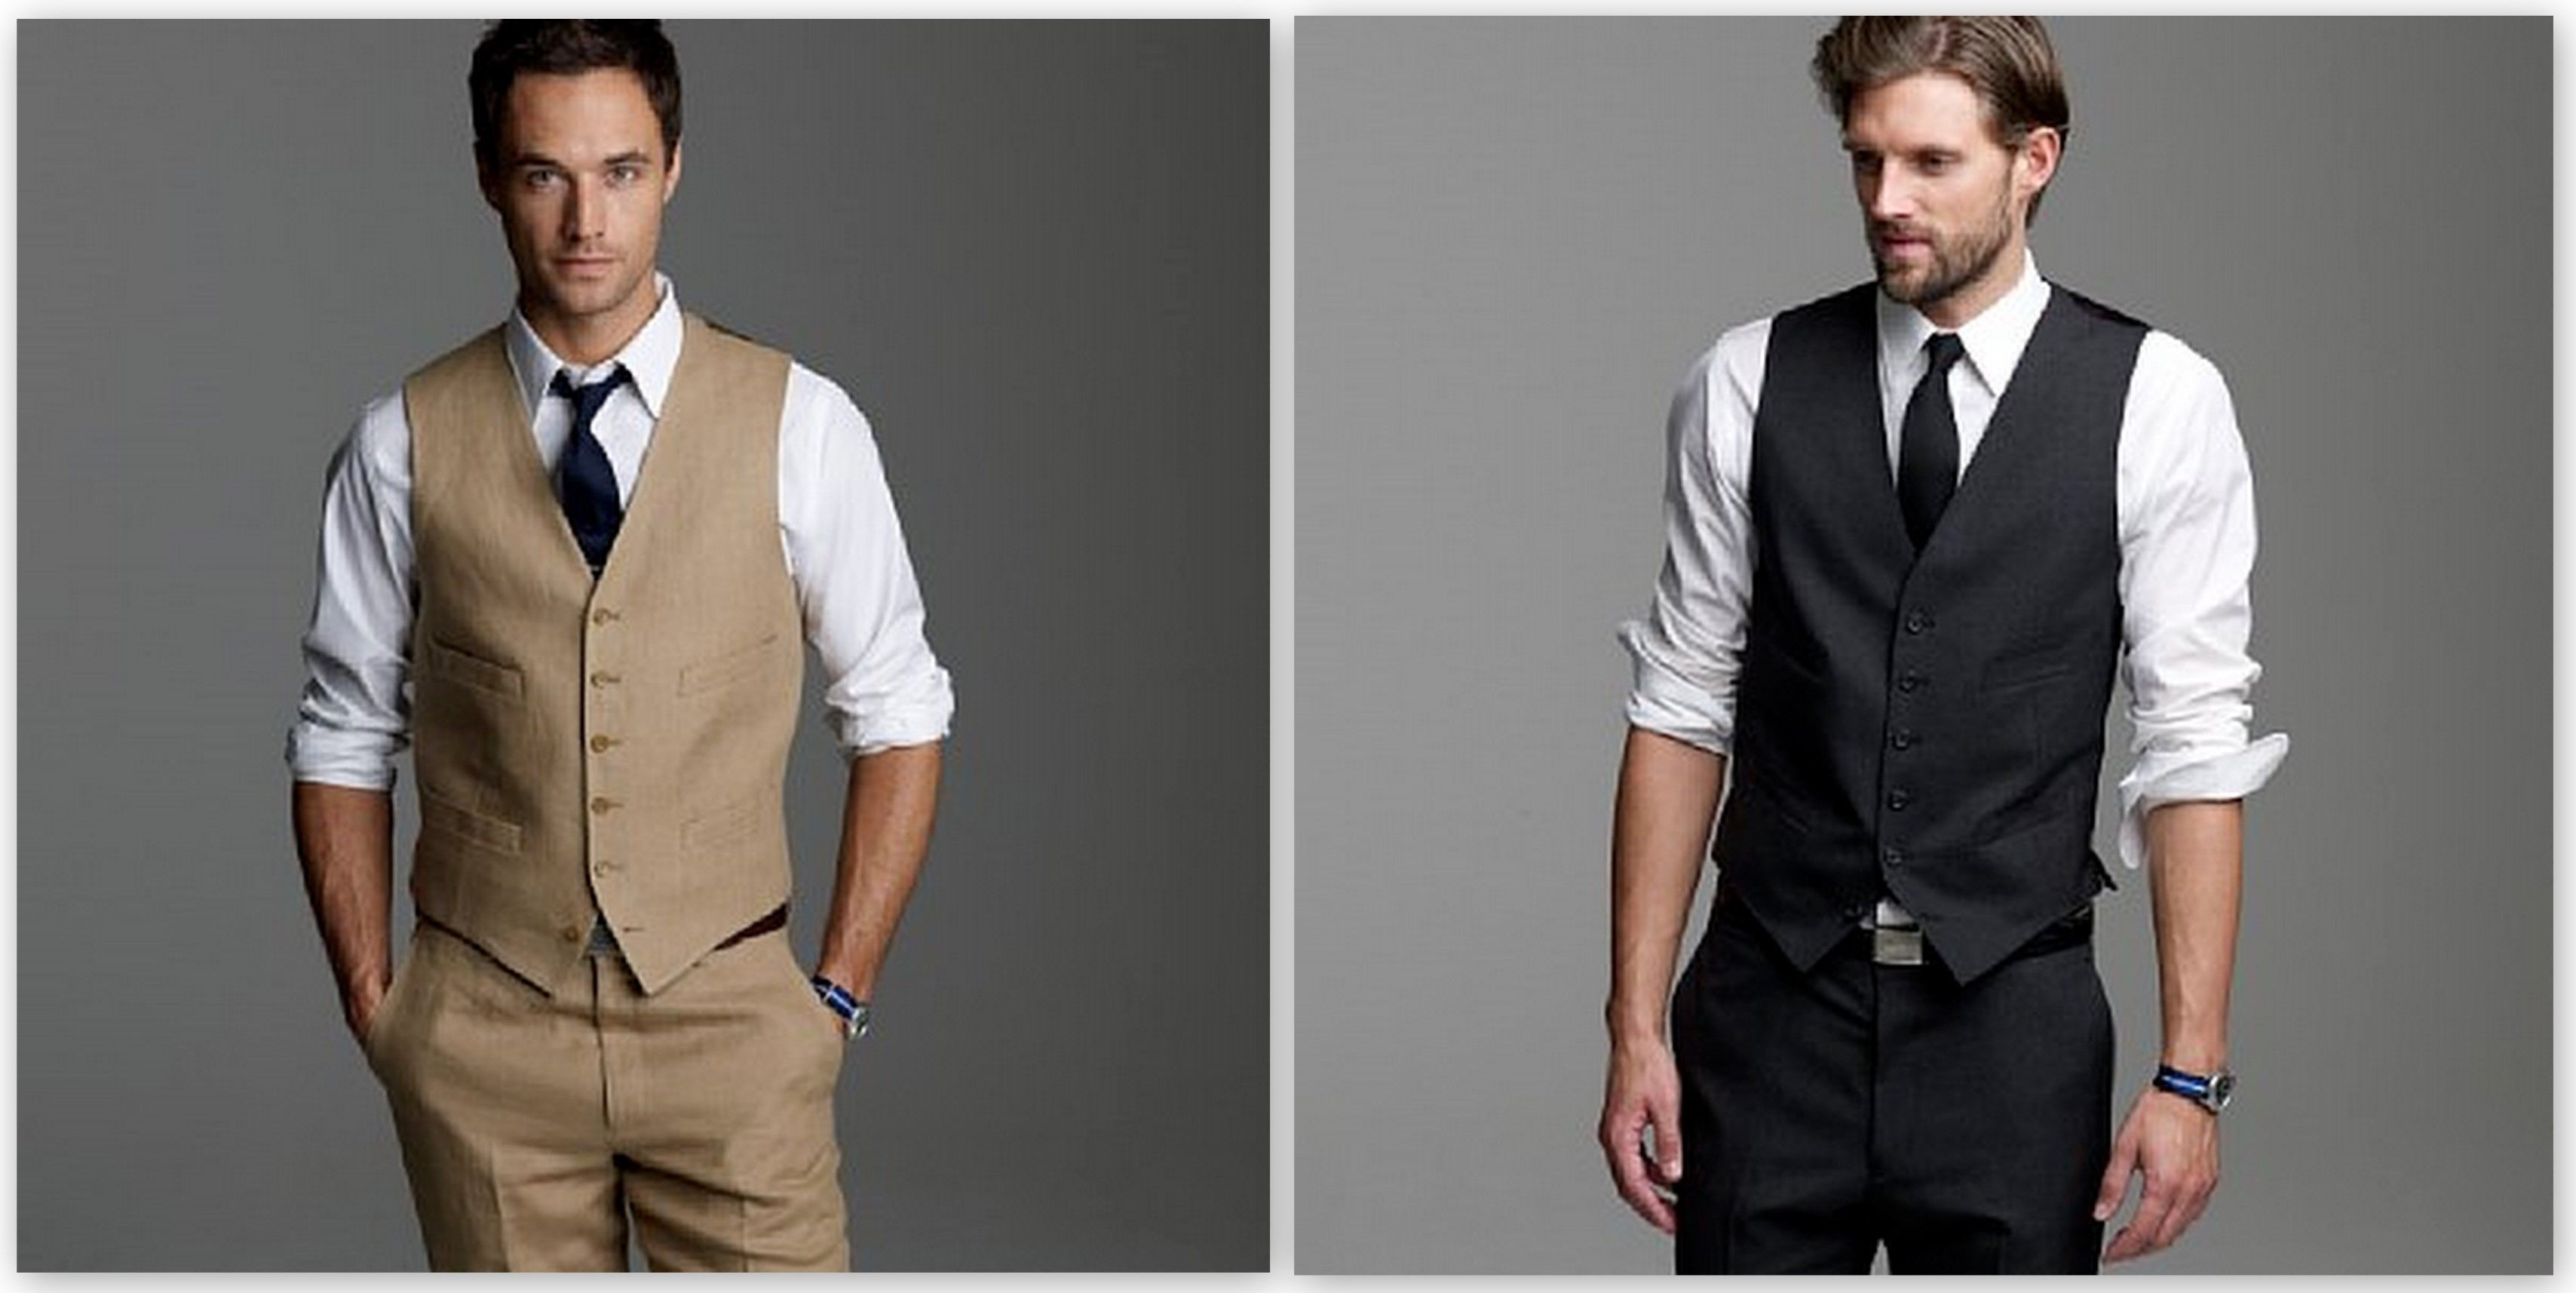 Planner Arizona Wedding Stylish Men S Attire